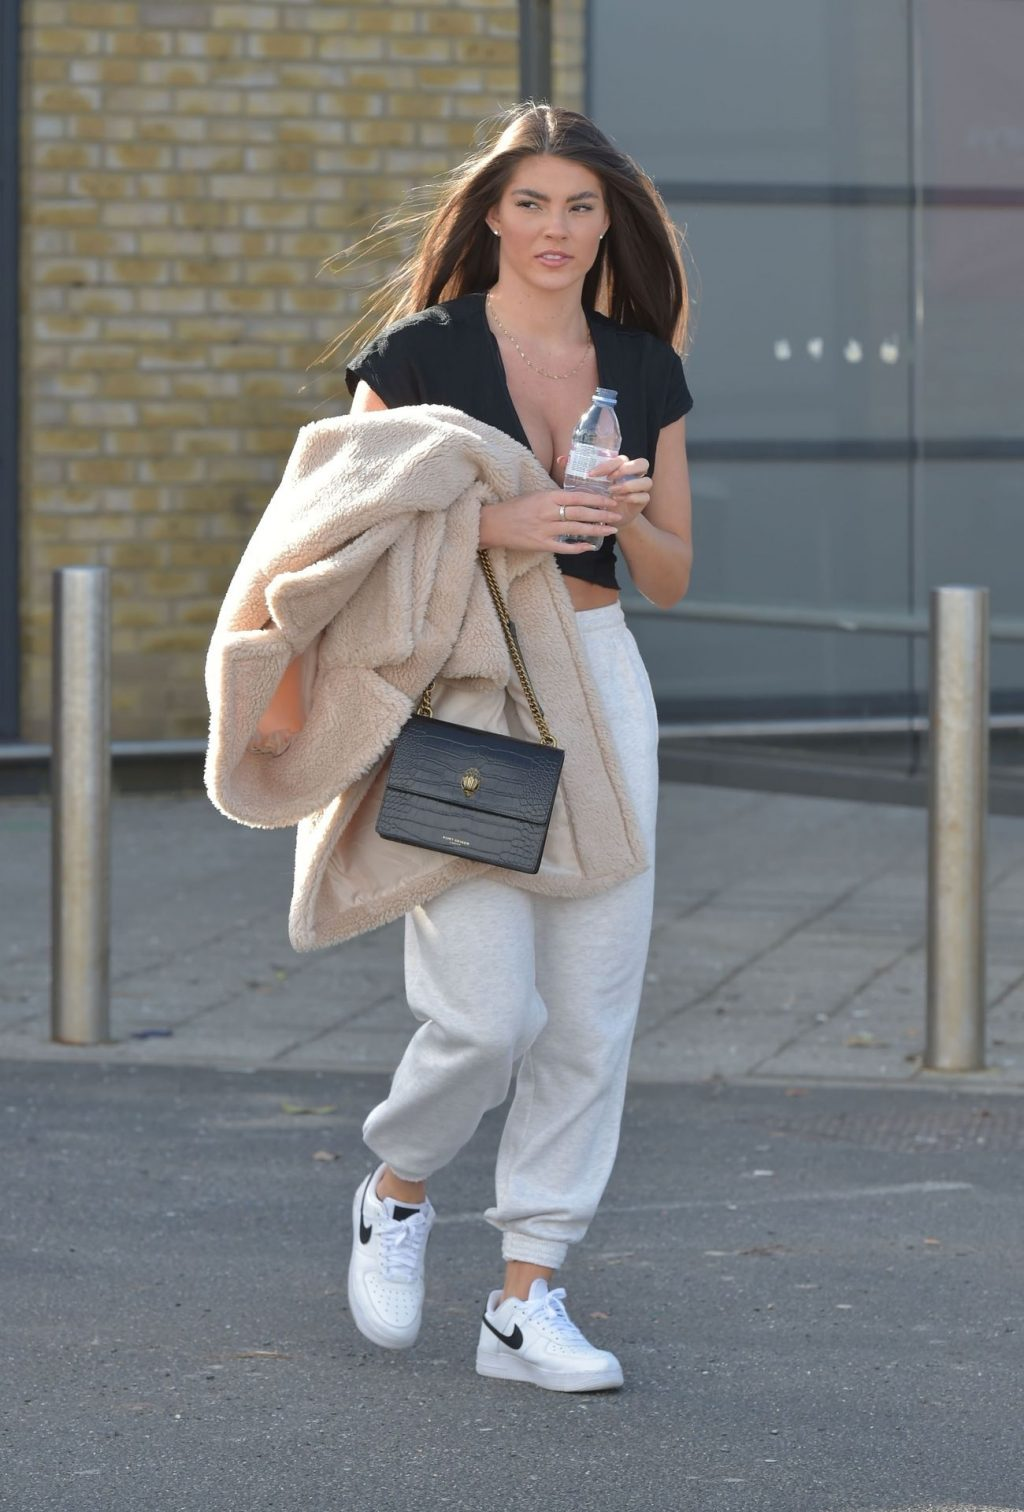 Rebecca Gormley is Seen Heading to Sainsbury's in Newcastle (34 Photos)